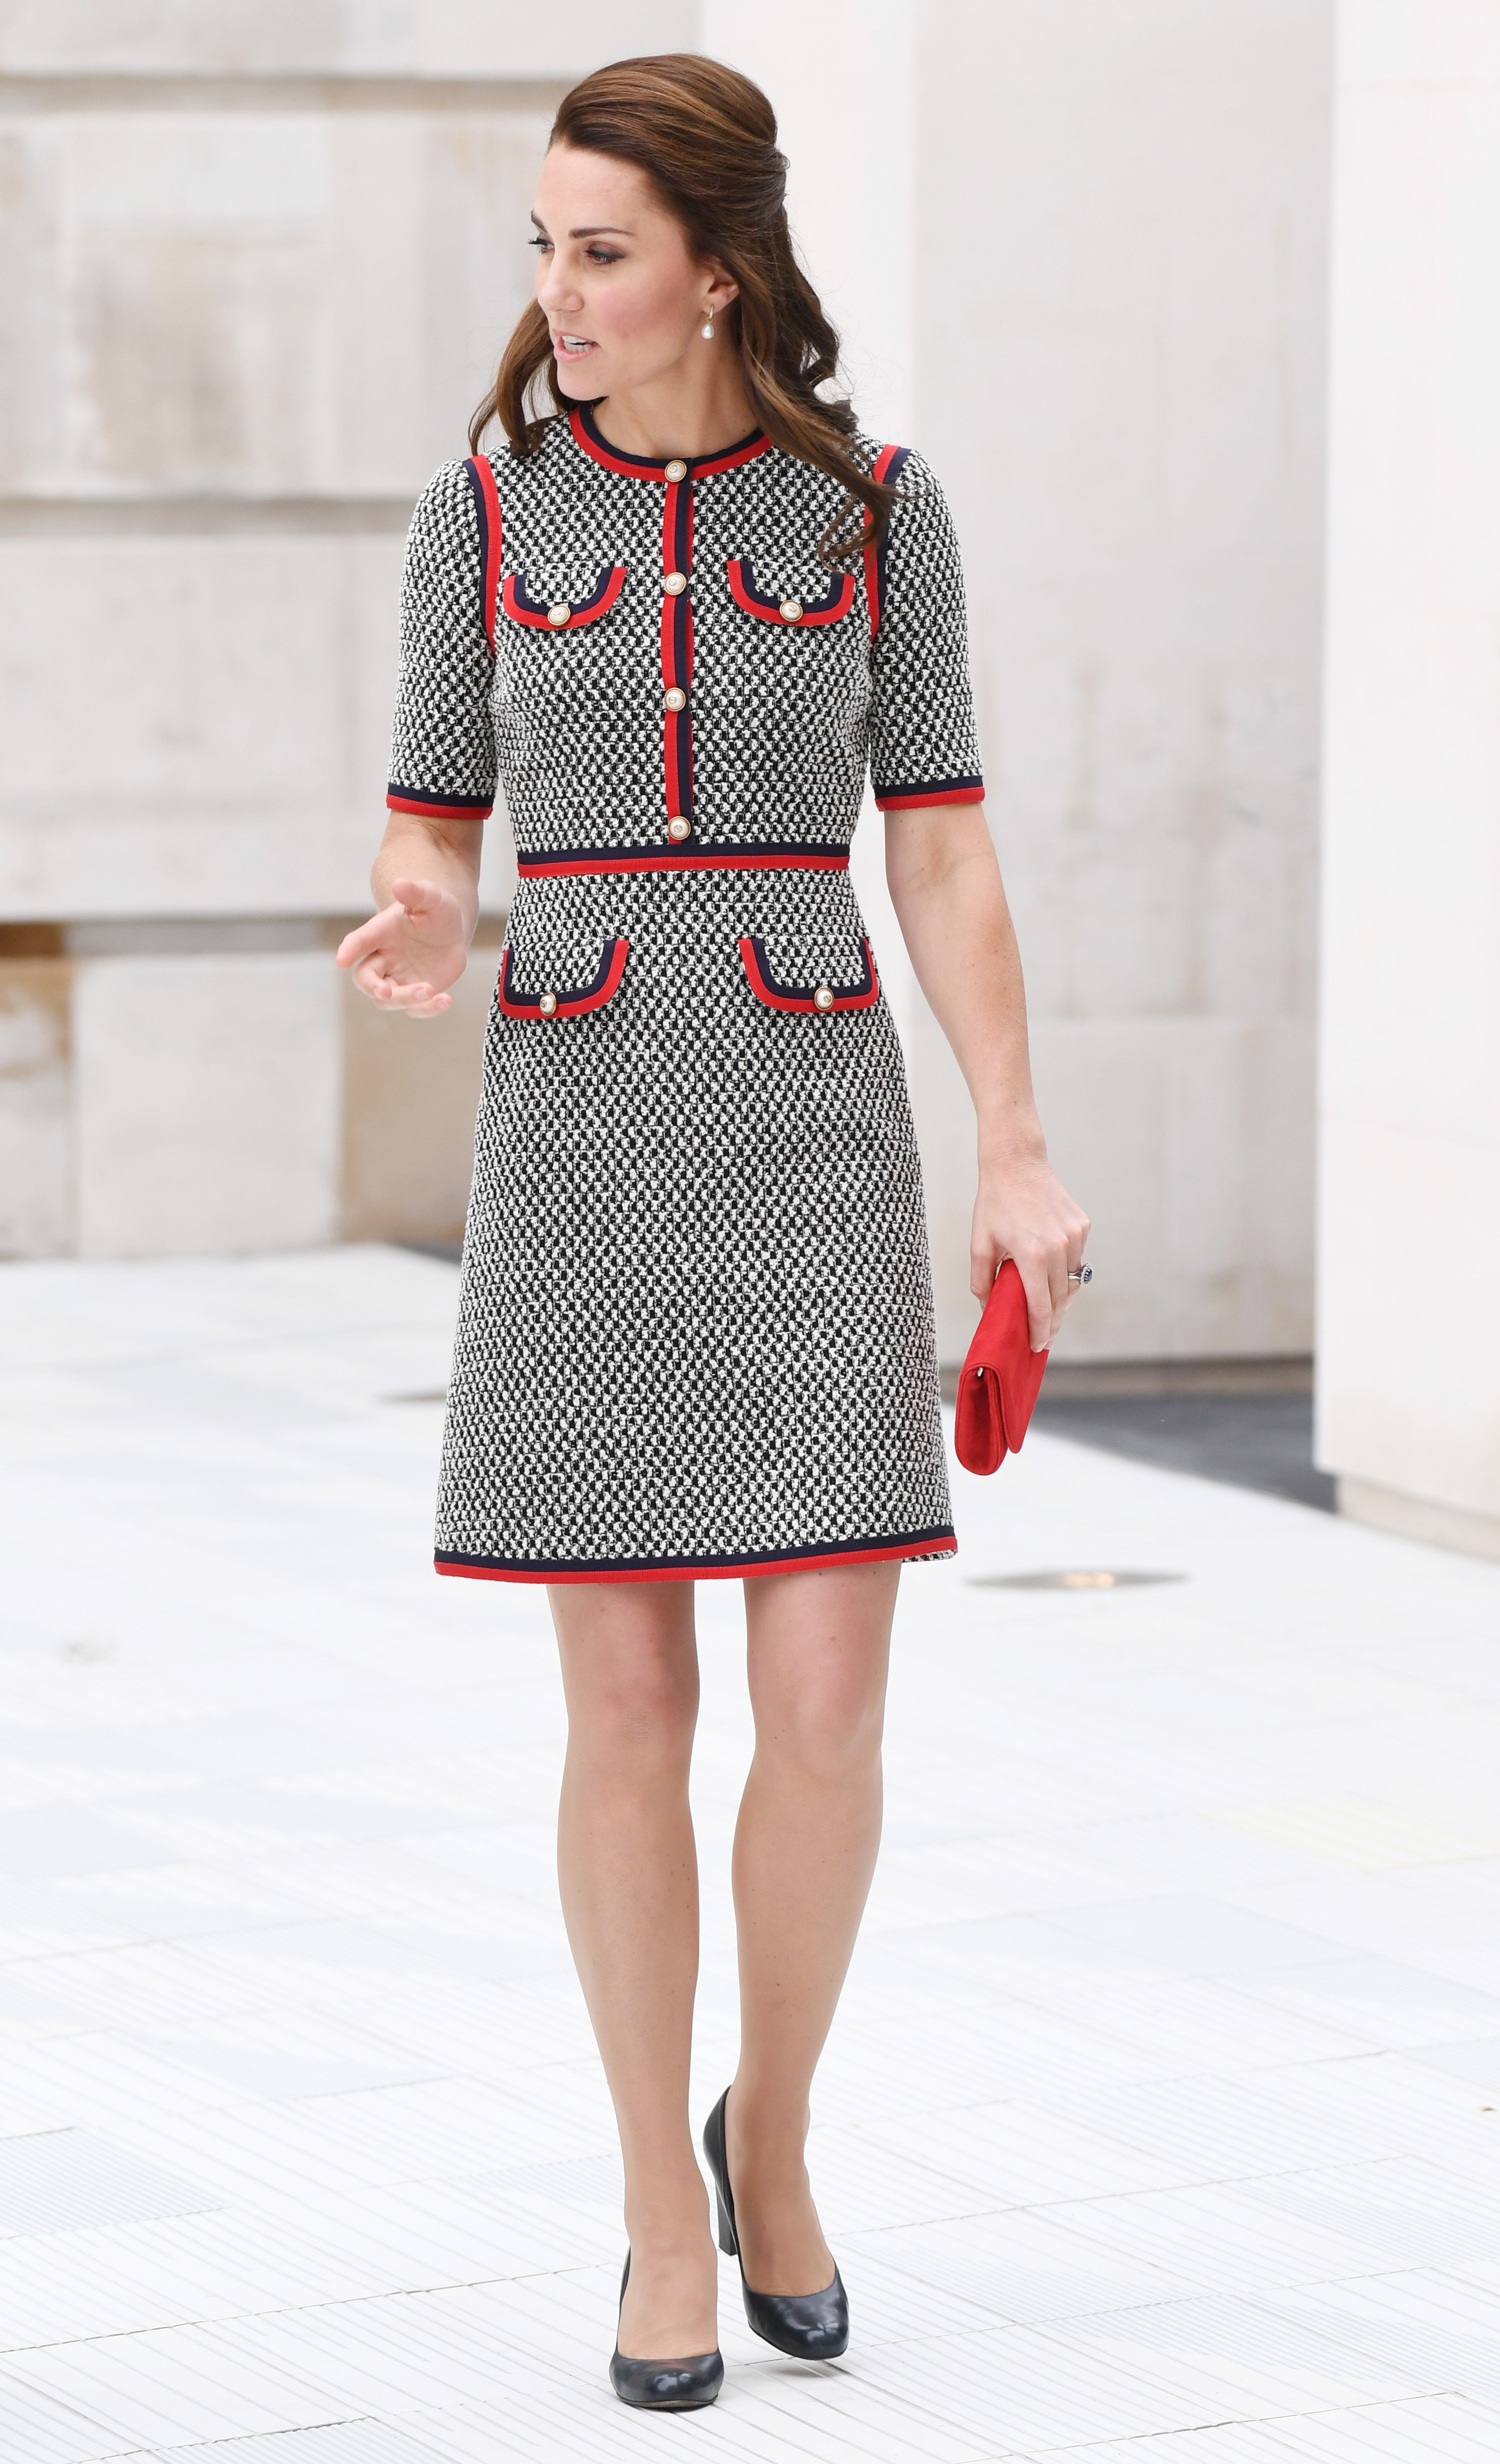 Boden release affordable look-a-like of the Duchess of Cambridge's Gucci tweed dress